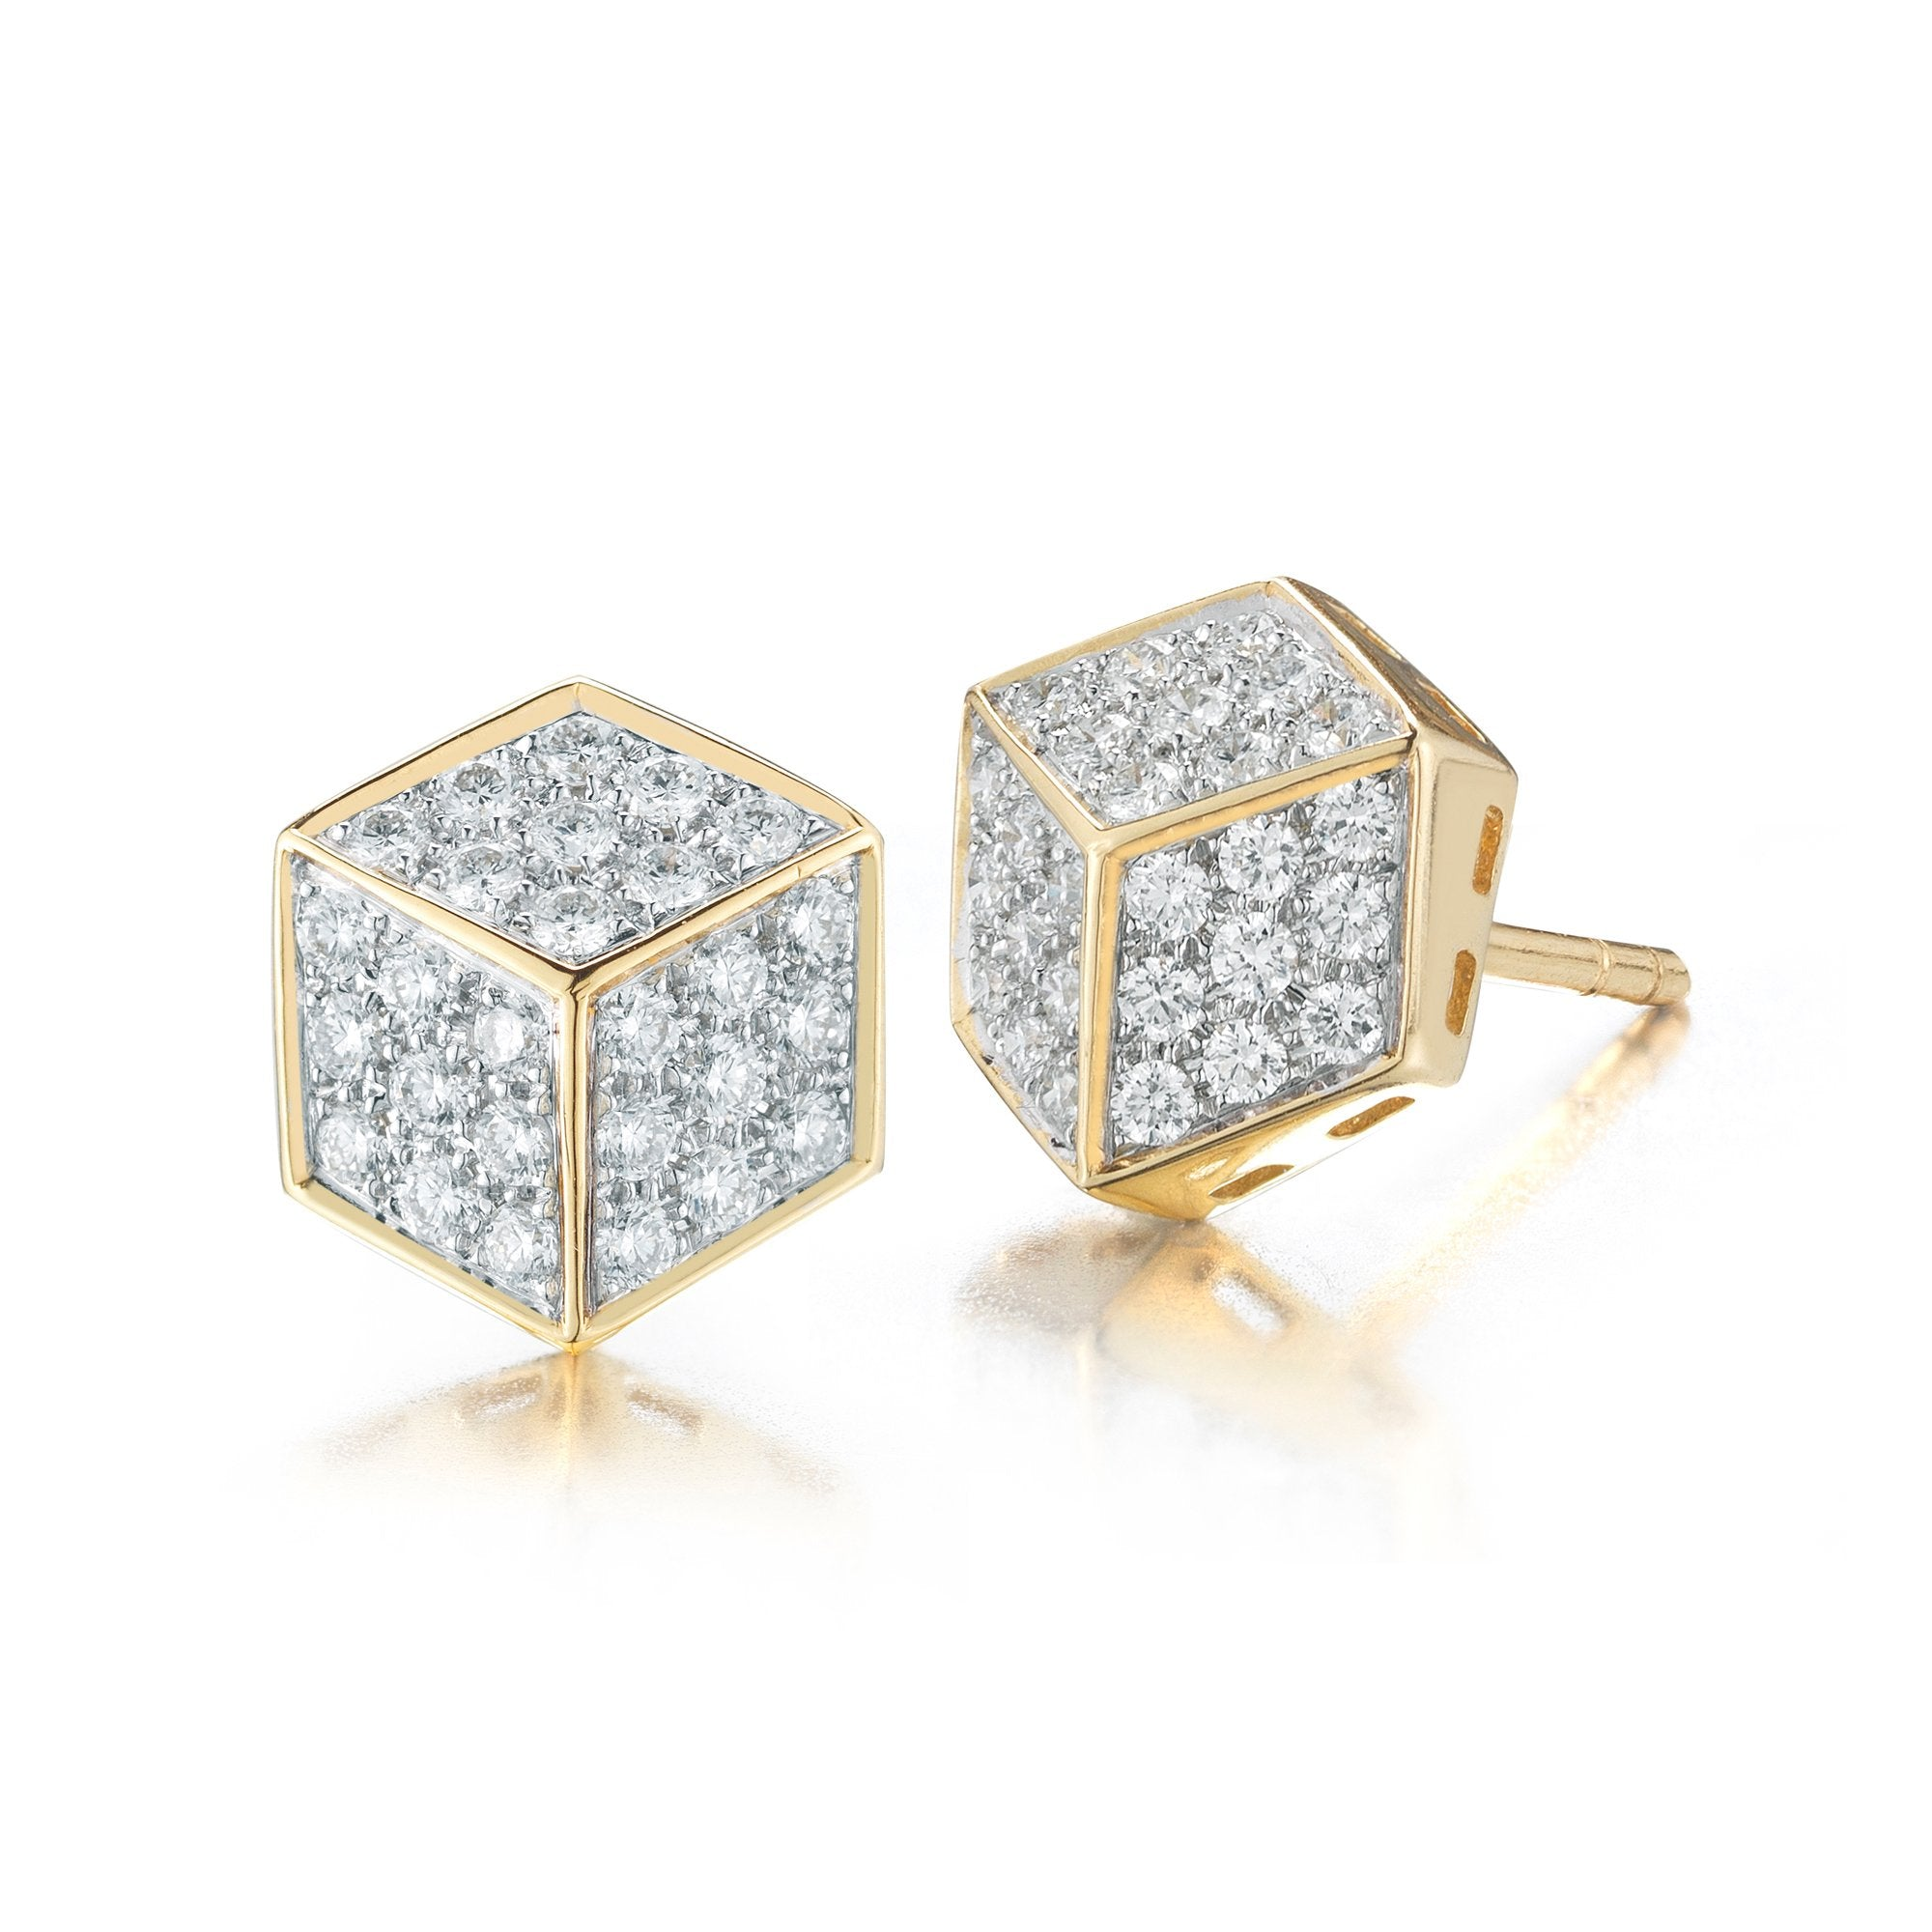 Yellow Gold and Diamond Stud Earrings - Paolo Costagli - 1